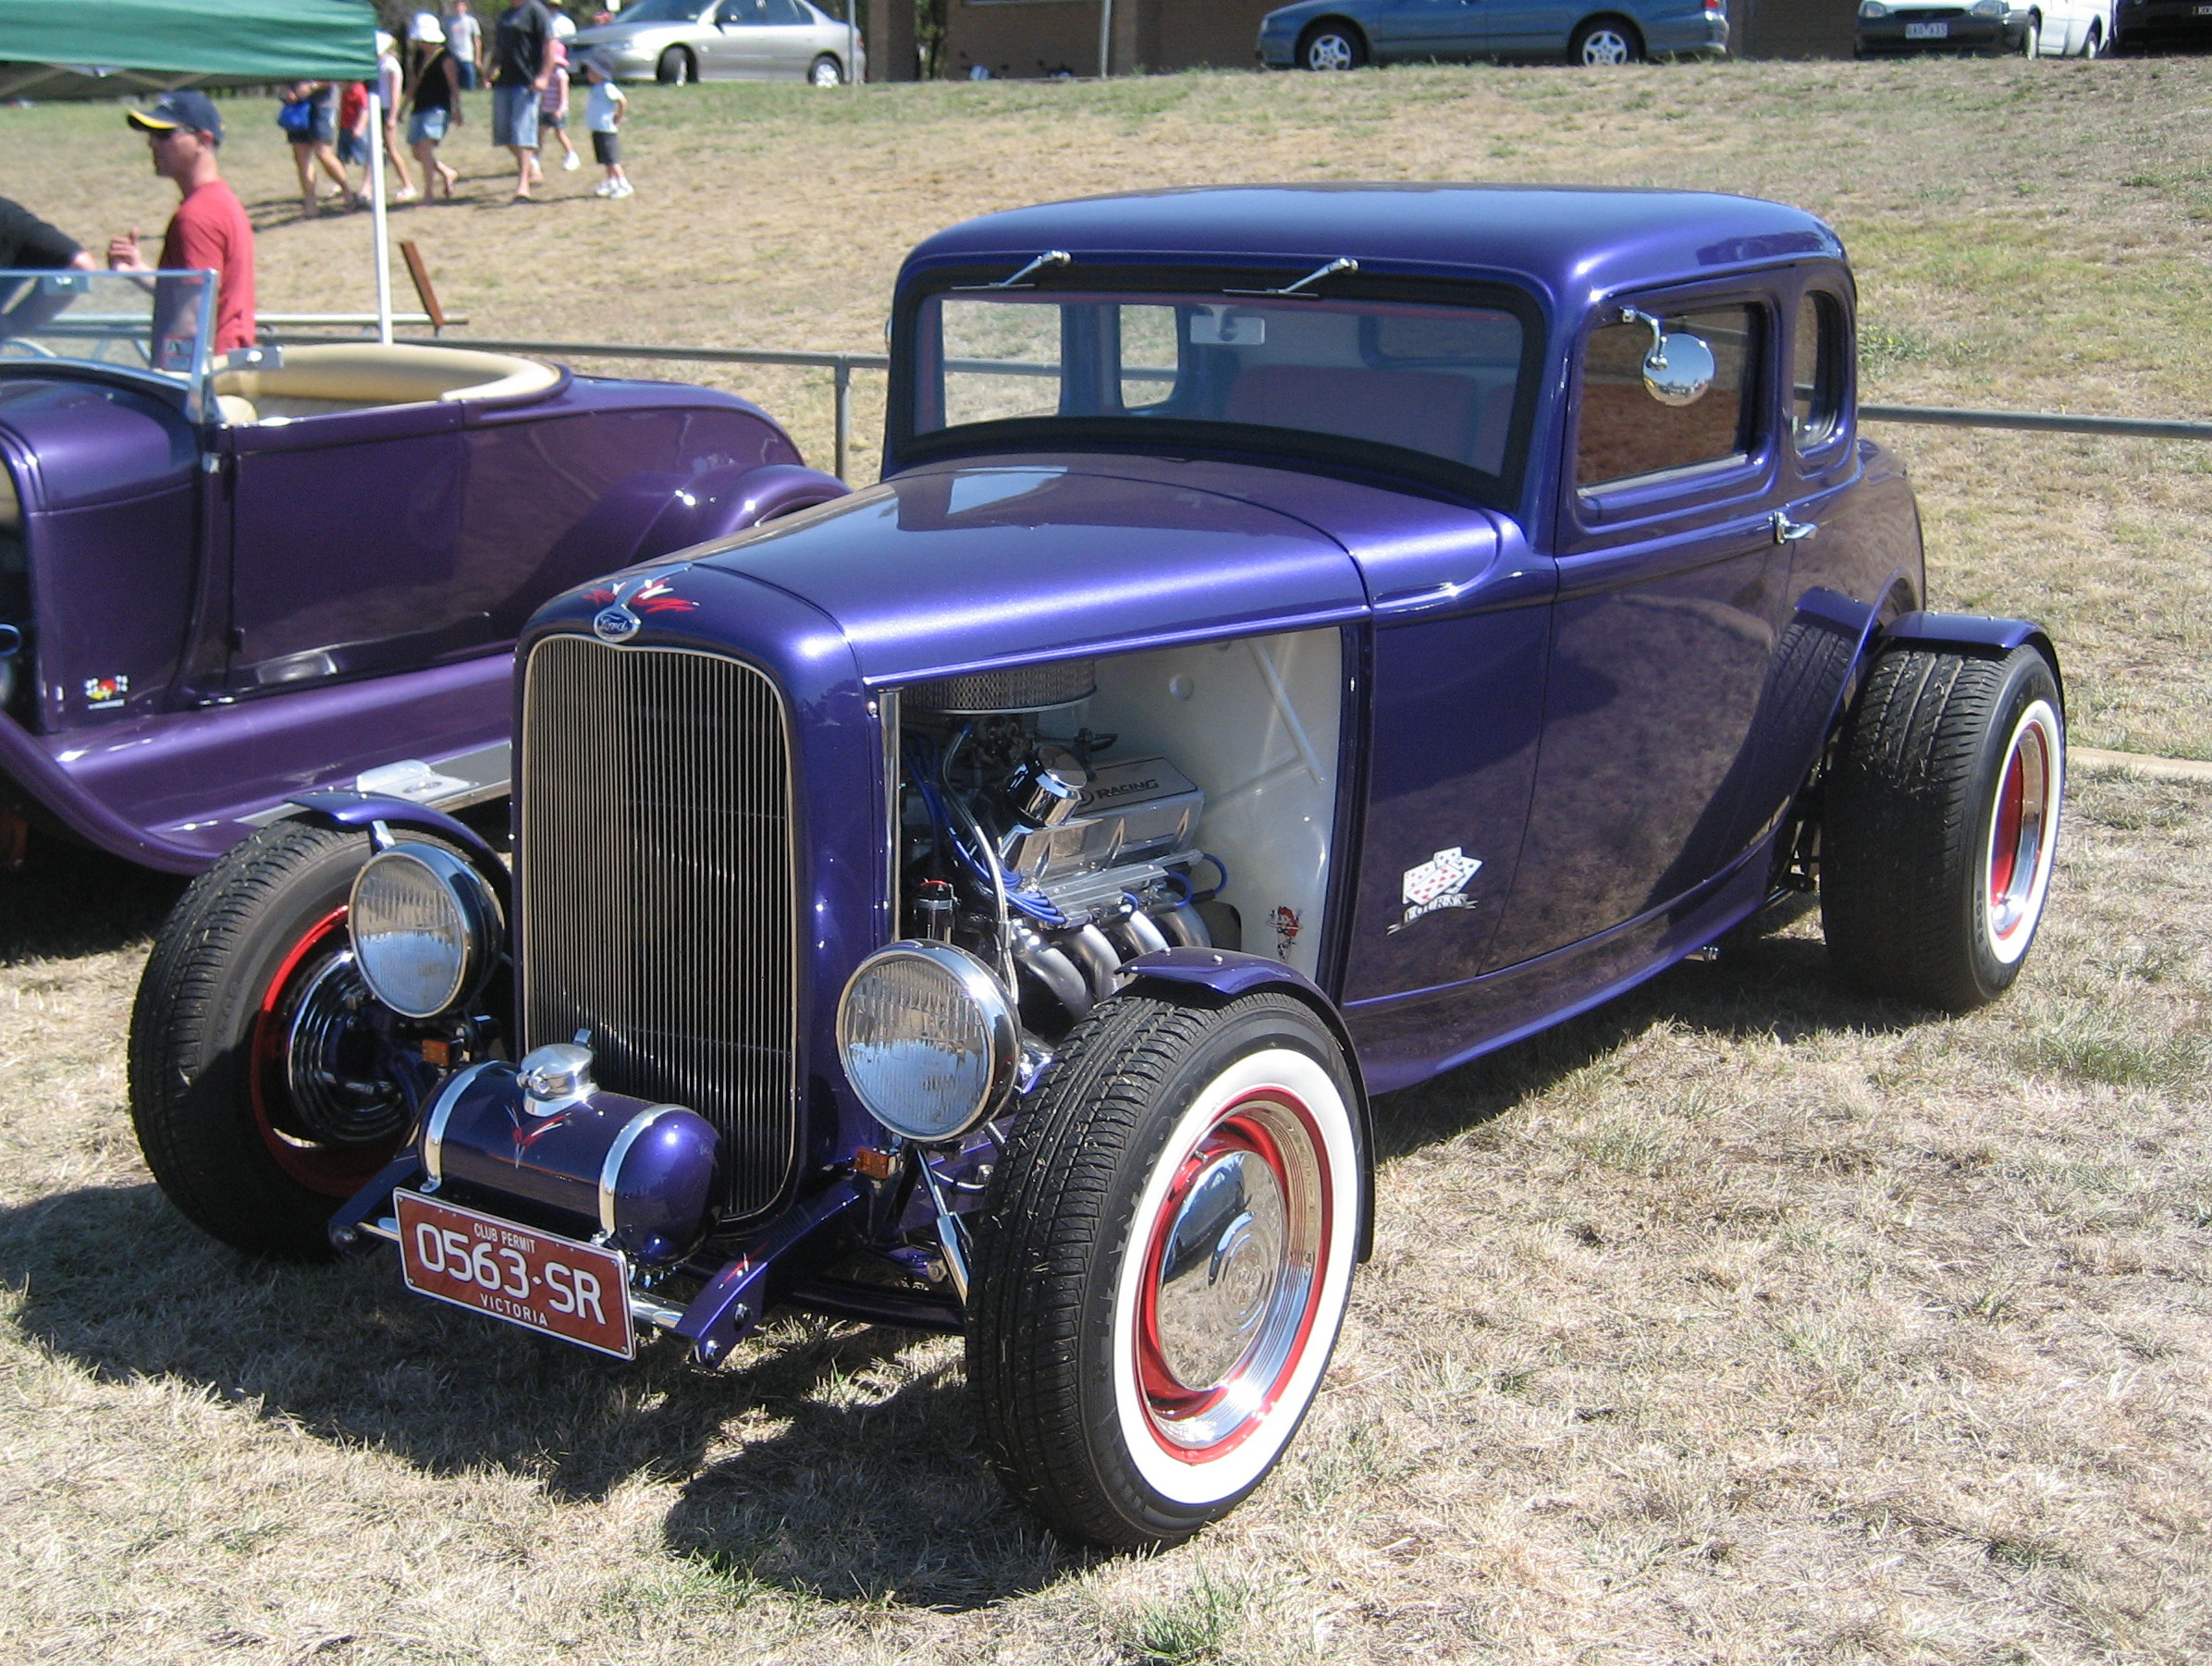 File:1932 Ford 5 Window Coupe Hot Rod (2).jpg - Wikimedia Commons